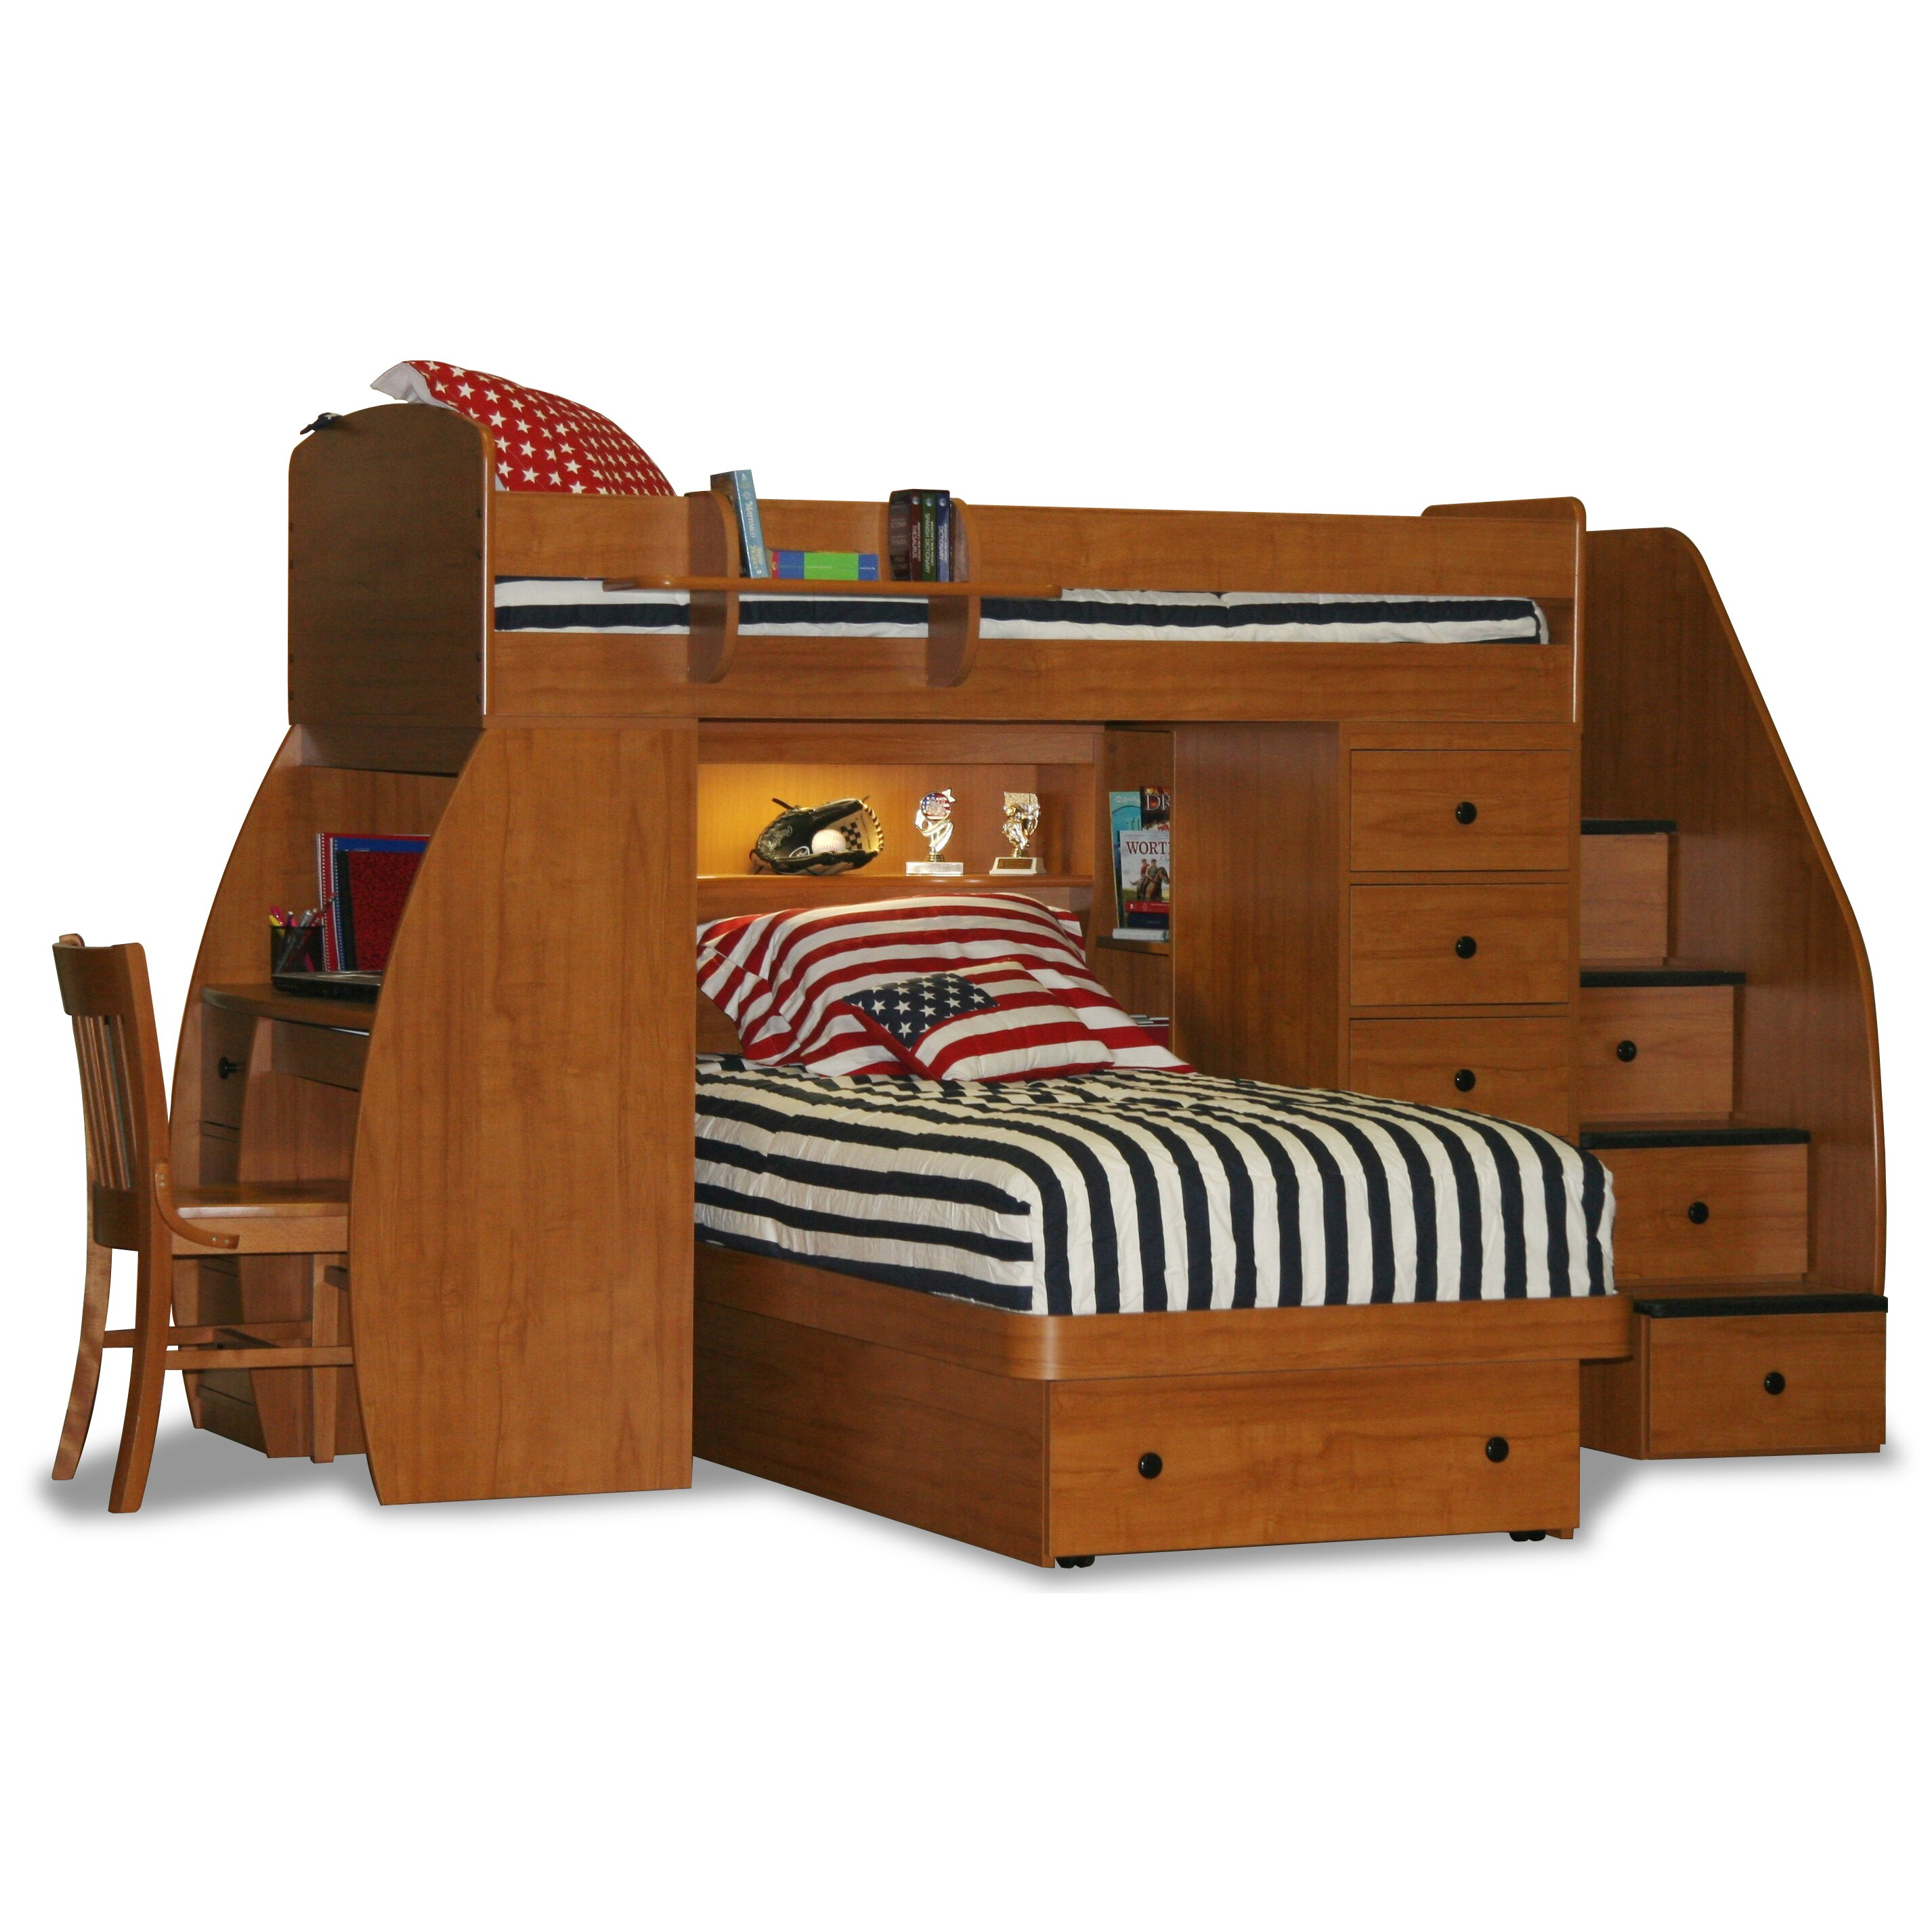 Space Saving Bunk Beds: Sierra Twin L-Shaped Bunk Bed With Storage